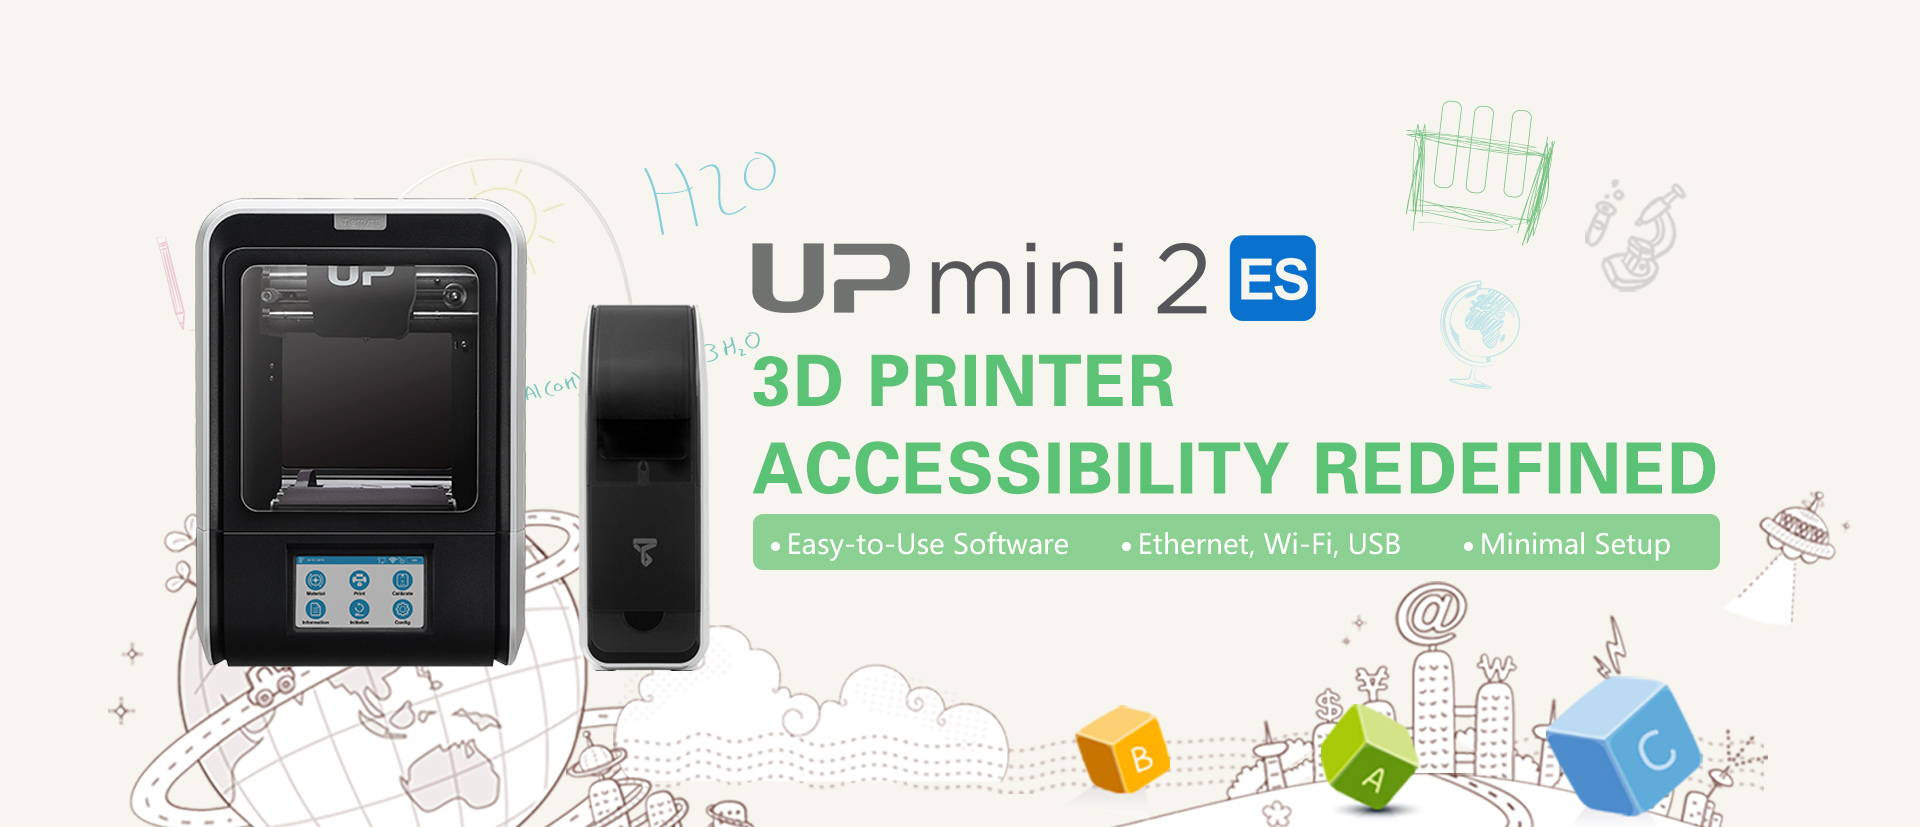 UP mini 2 ES 3D printer